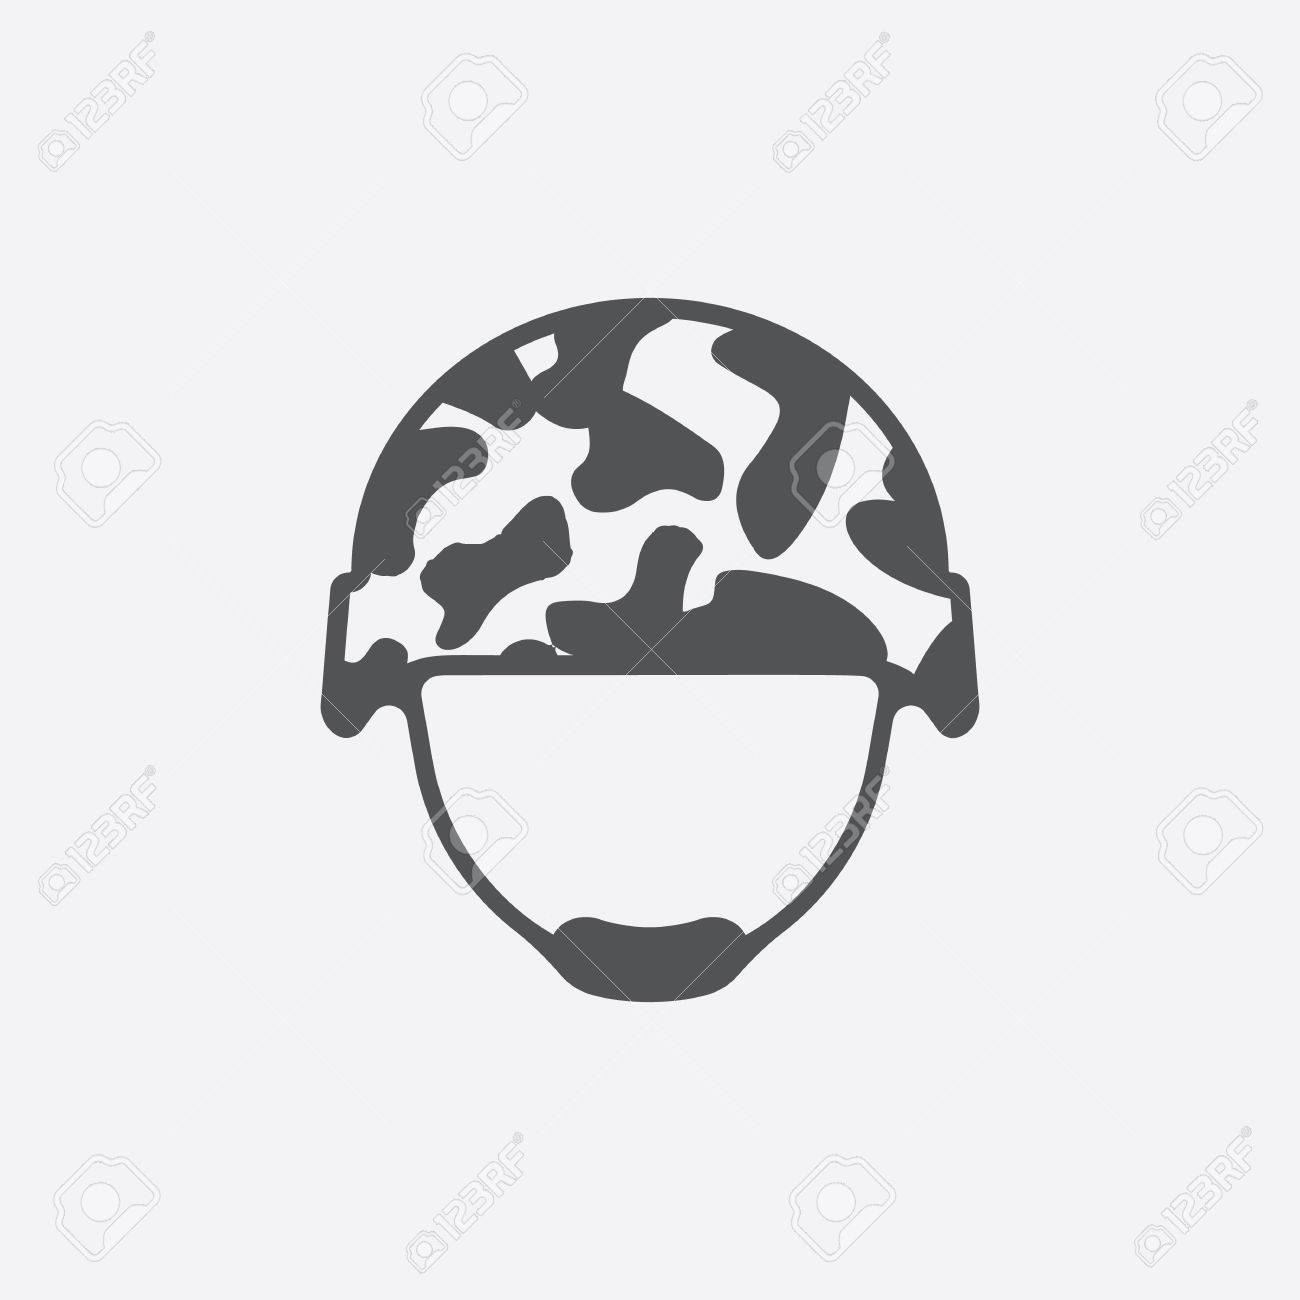 Helmet icon of vector illustration for web and mobile design - 54750740